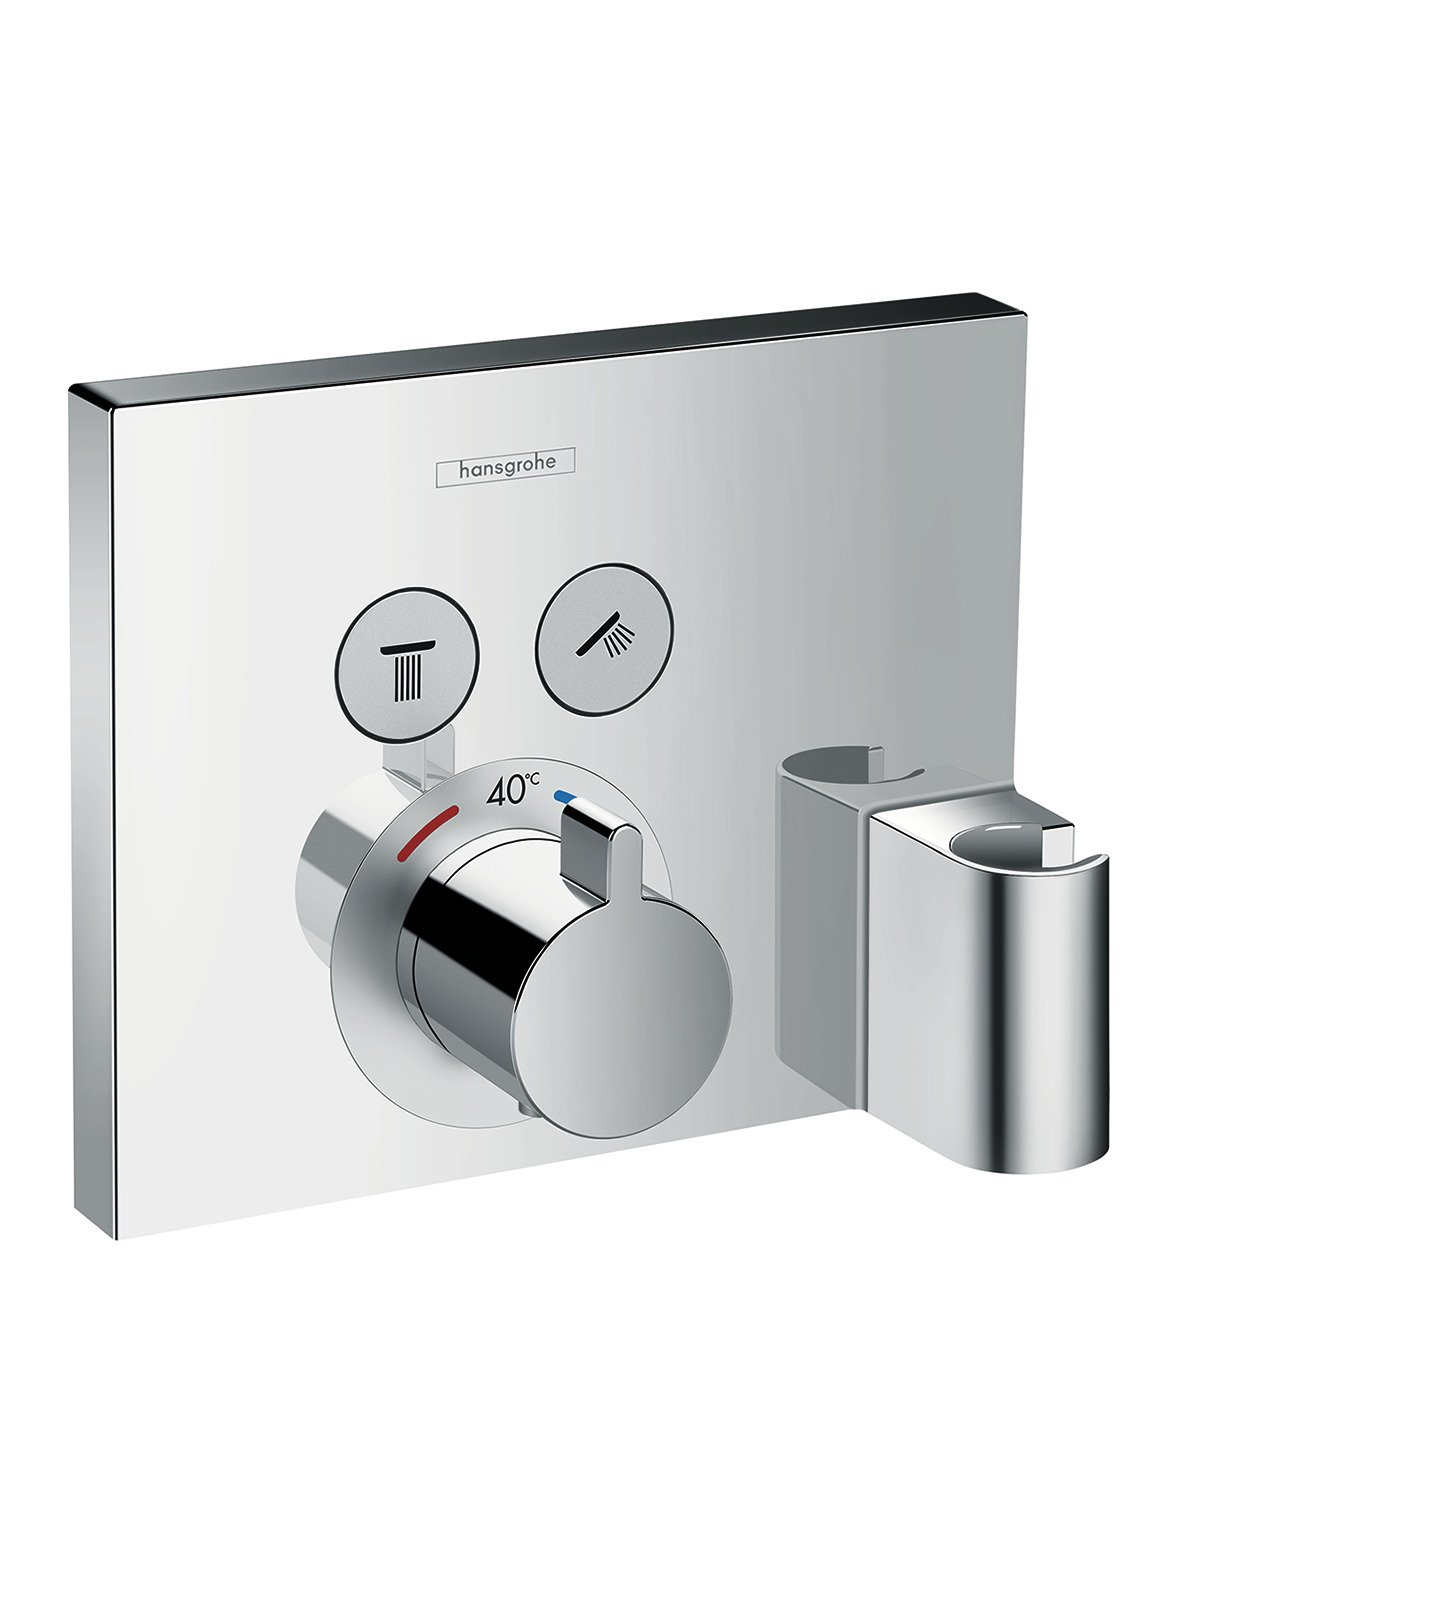 hansgrohe Thermostatic for concealed installation ShowerSelect FS 2 Verbraucher chrome m.Fixfit u.Porter by Hansgrohe